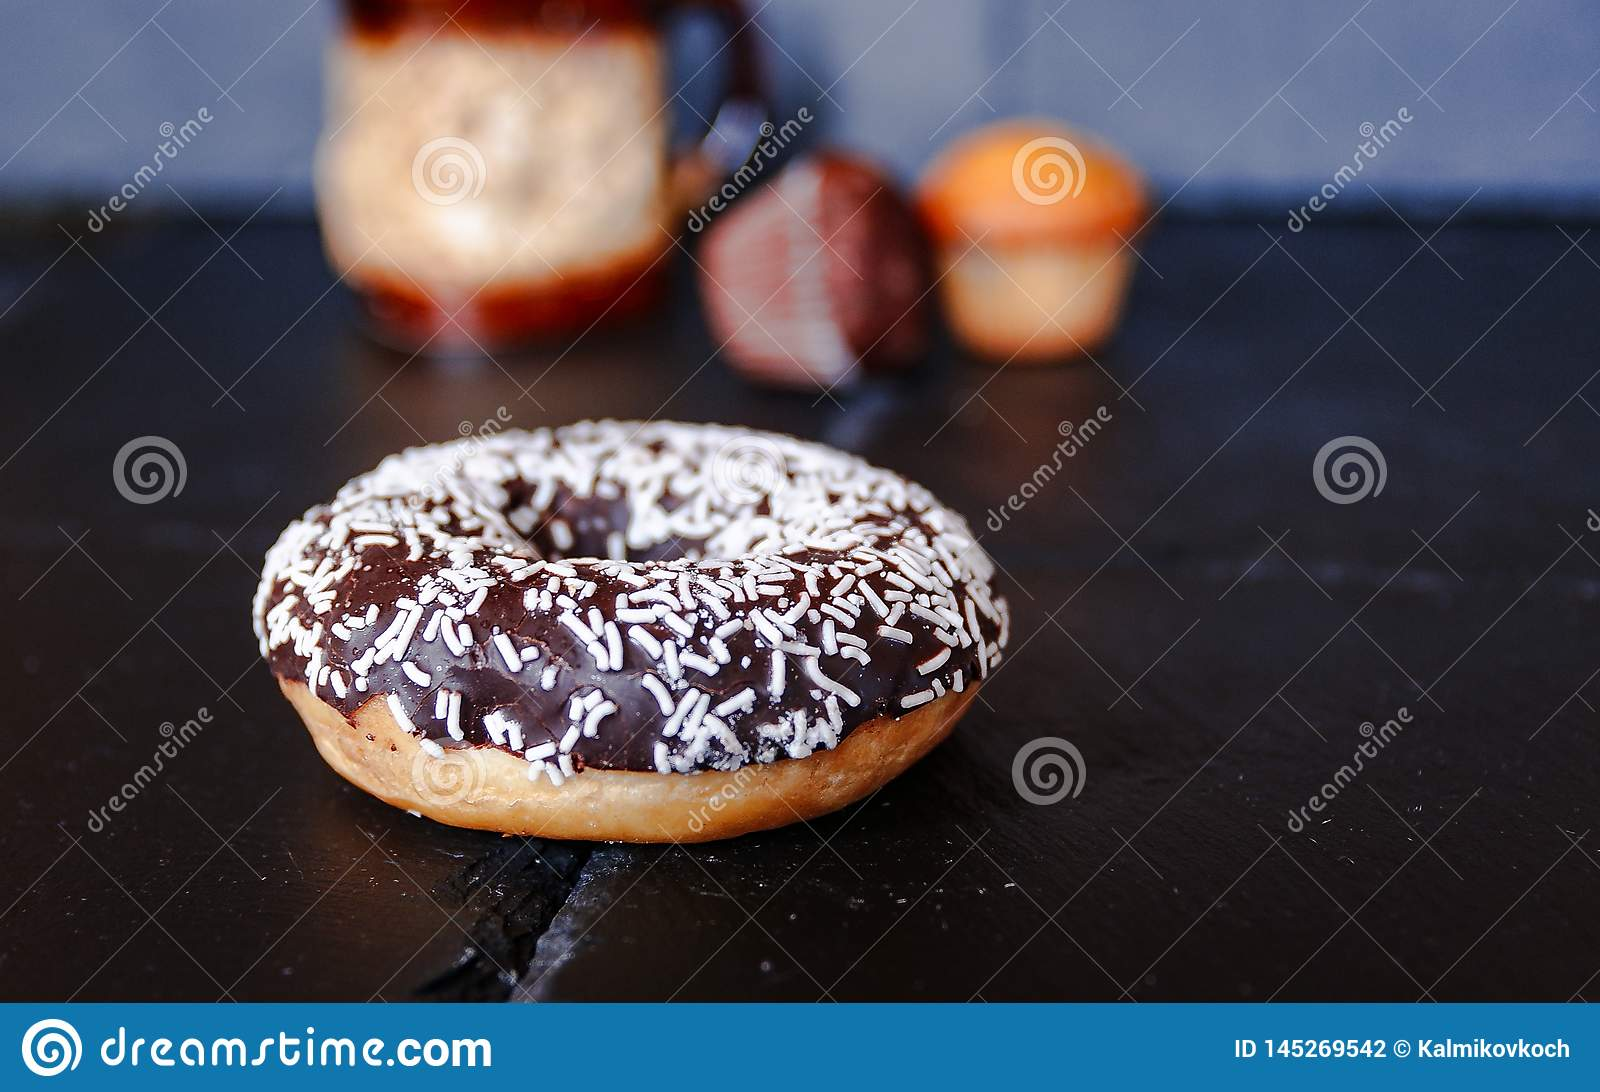 Chocolate donut with muffins on  background.